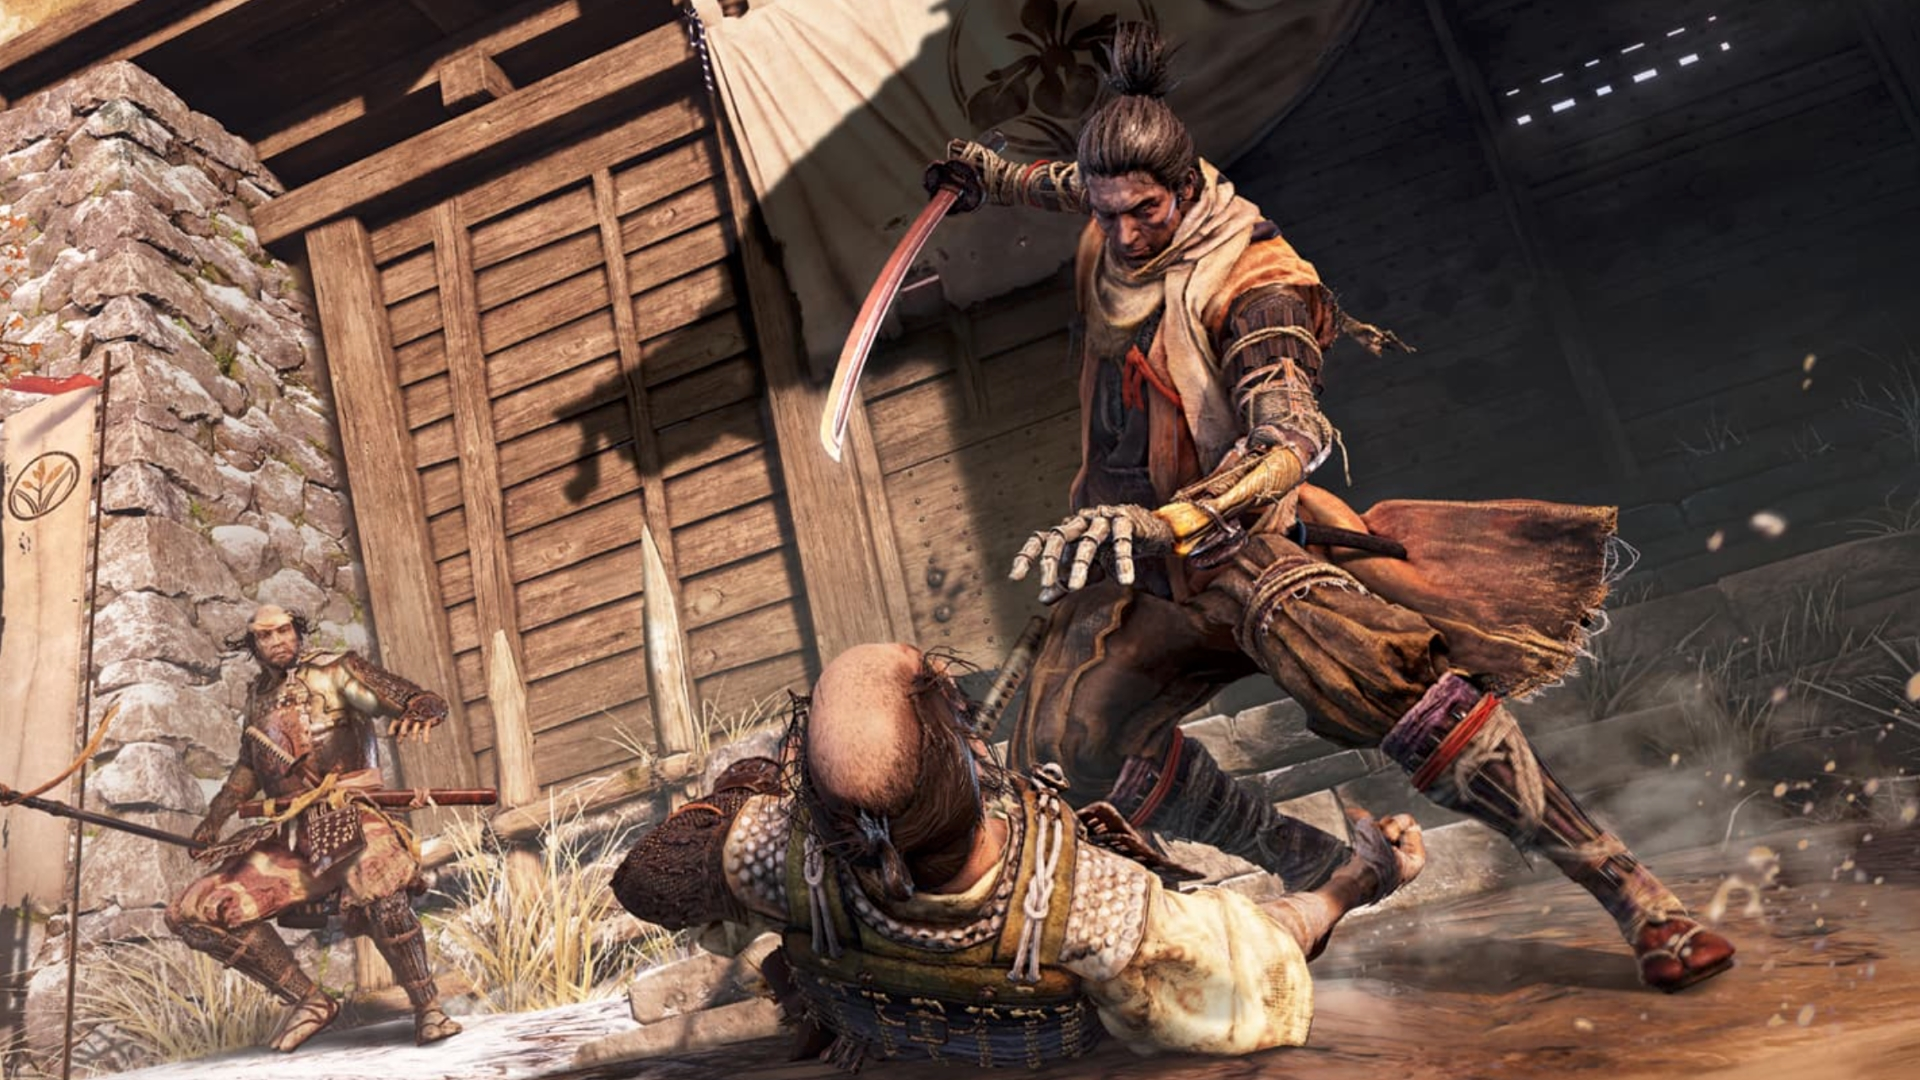 Sekiro: Shadows Die Twice for MacBook gameplay